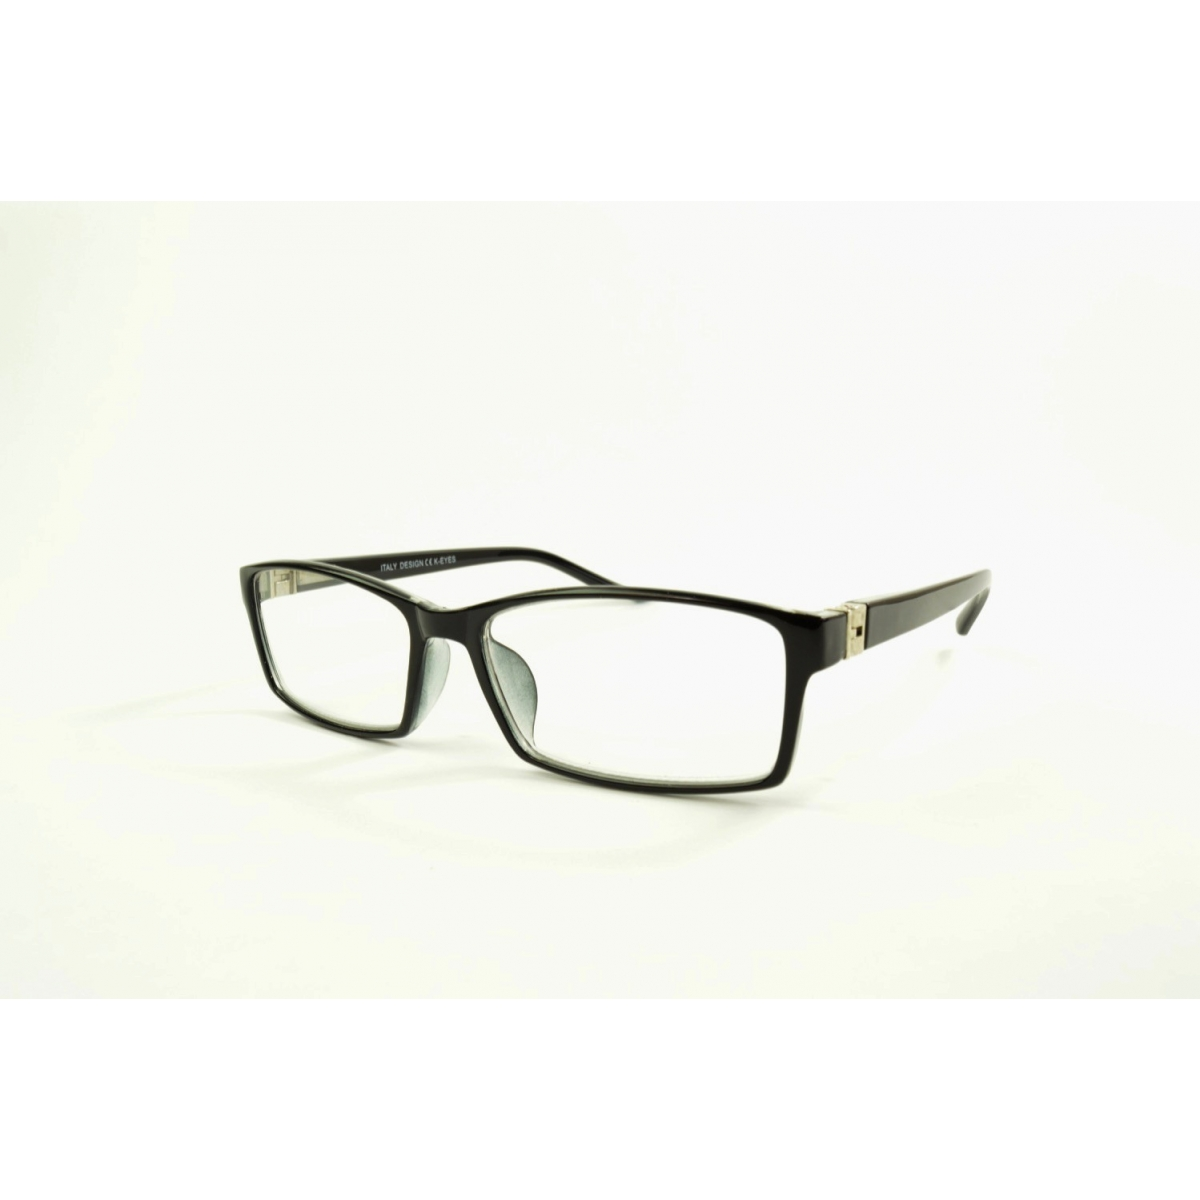 Large rectangular reading glasses with 180 degrees extendable temples